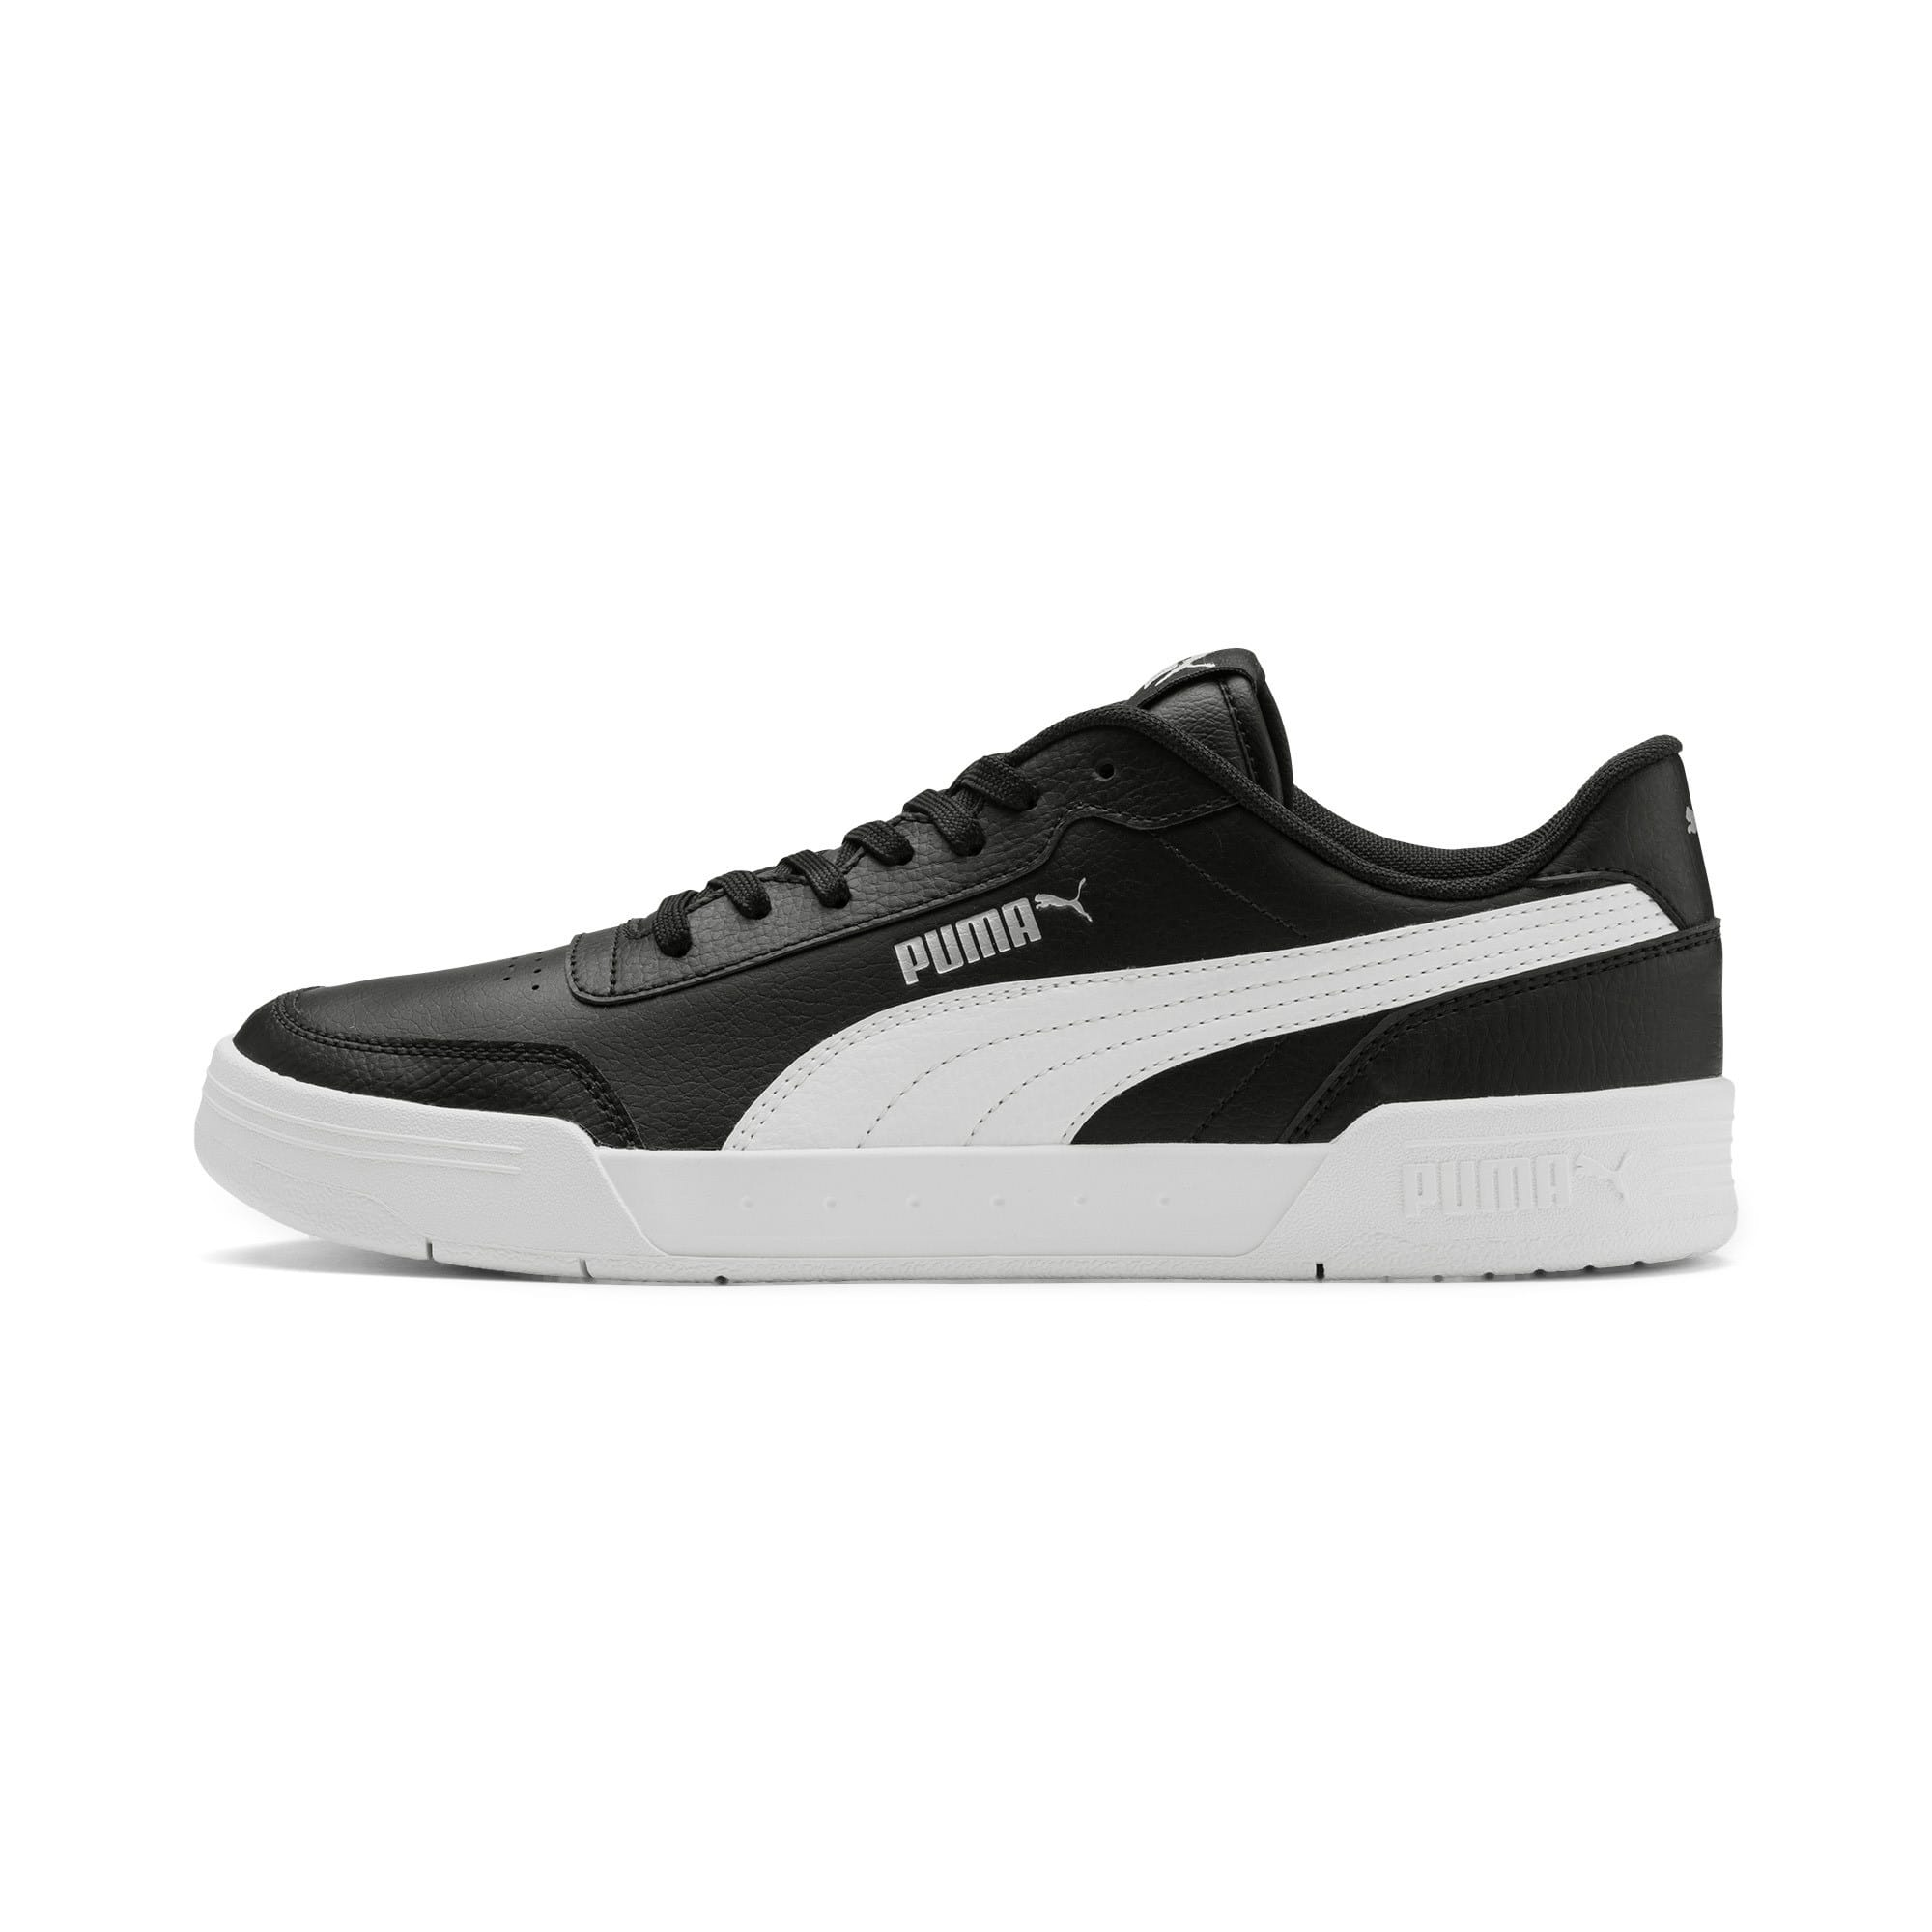 Thumbnail 1 of Caracal Sneakers, Puma Black-Puma White, medium